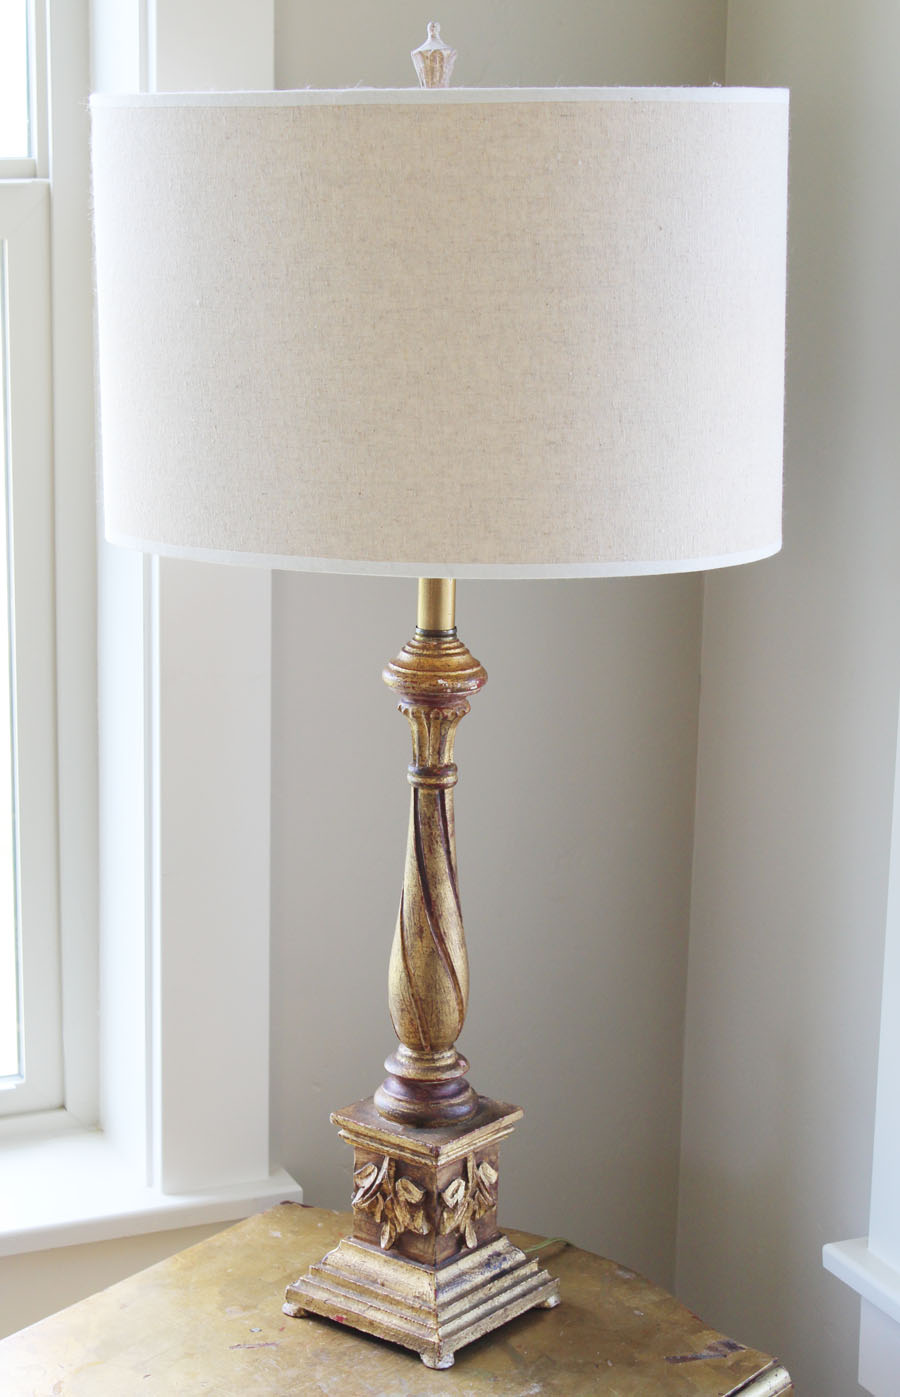 Made in Italy Carved Antique Lamp by Palladio Gorgeous Details